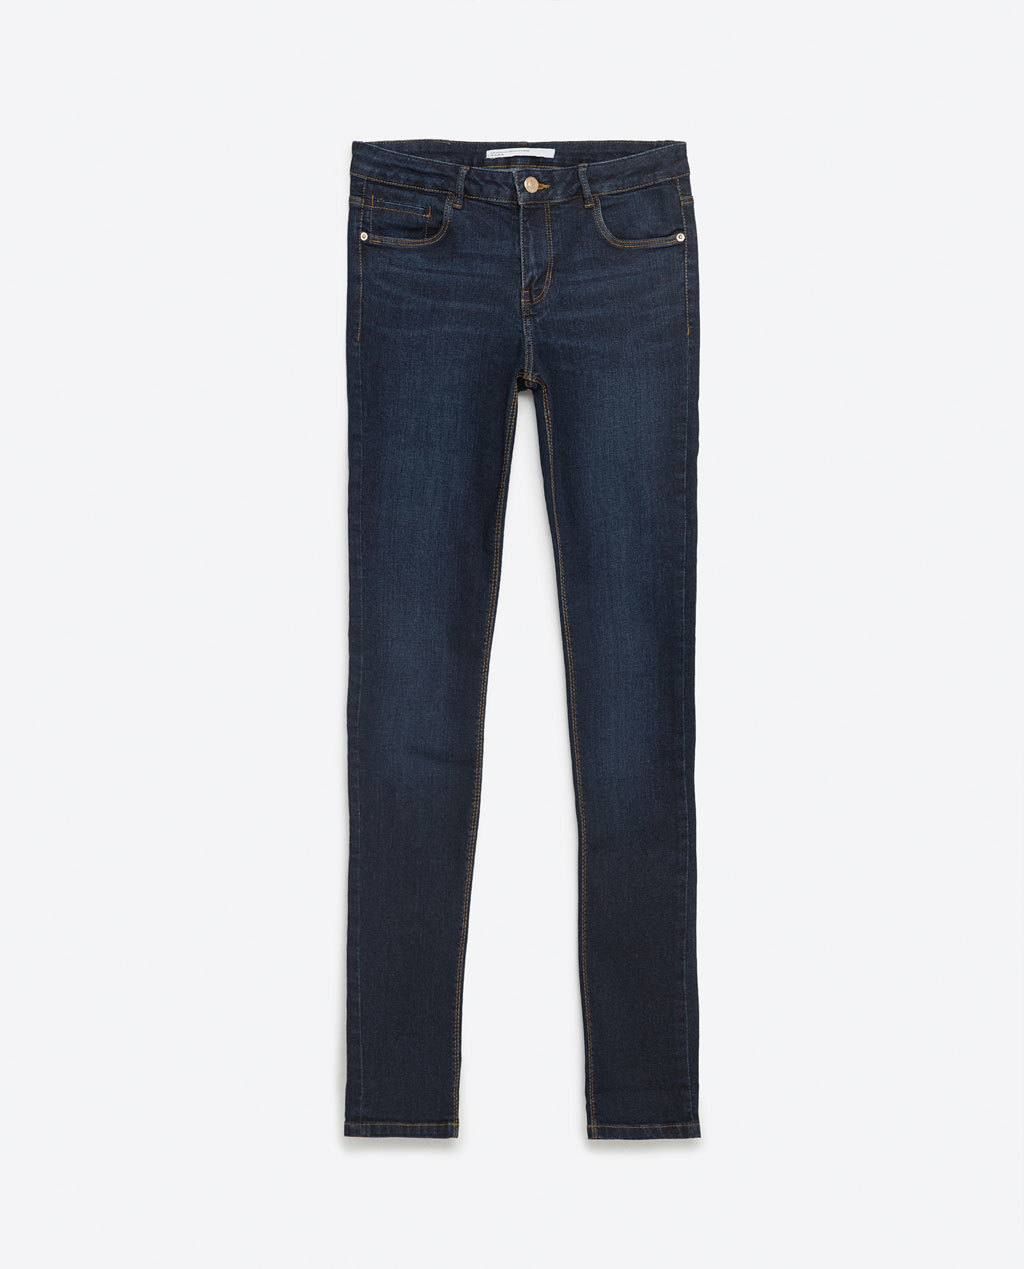 Jeans - length: standard; pattern: plain; pocket detail: traditional 5 pocket; style: slim leg; waist: mid/regular rise; predominant colour: navy; occasions: casual; fibres: cotton - stretch; jeans detail: dark wash; texture group: denim; pattern type: fabric; season: s/s 2016; wardrobe: basic